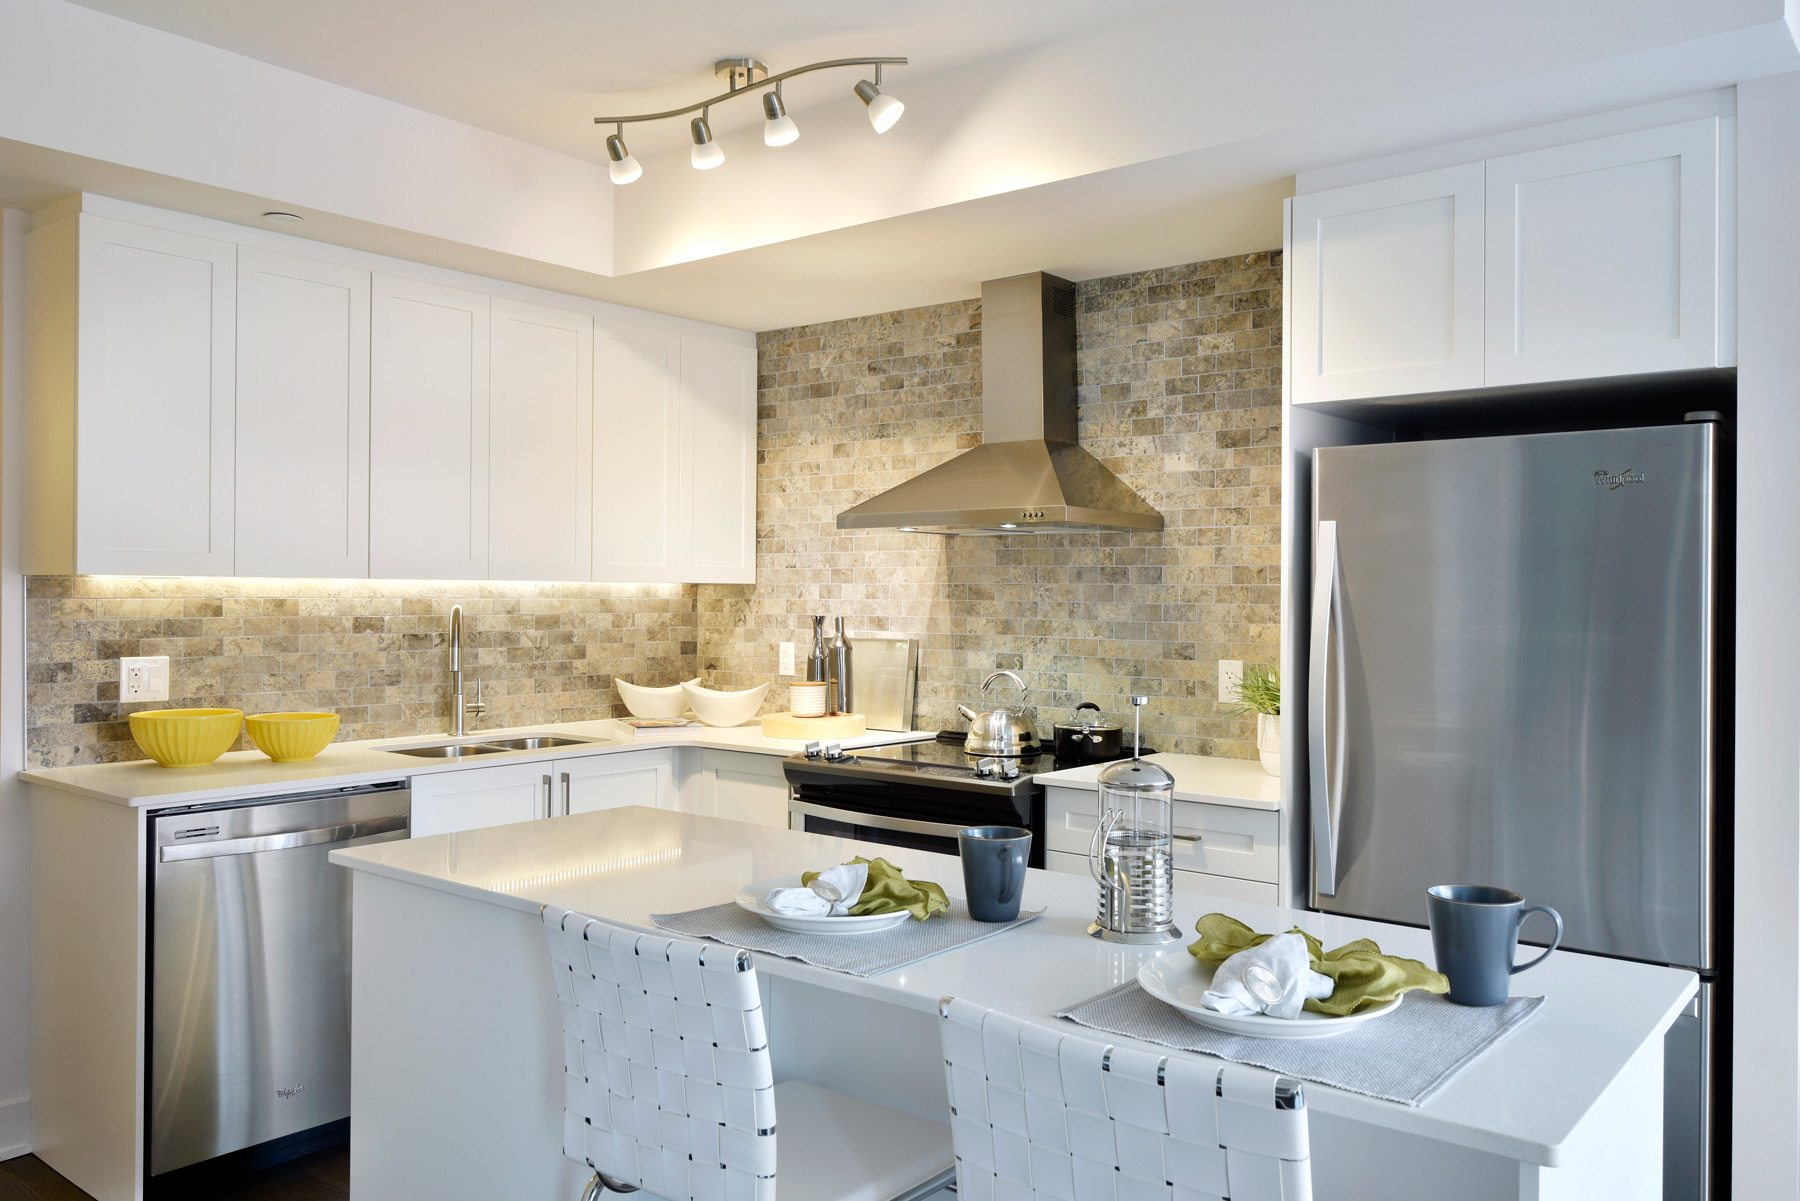 The Elmdale's kitchen/dining area